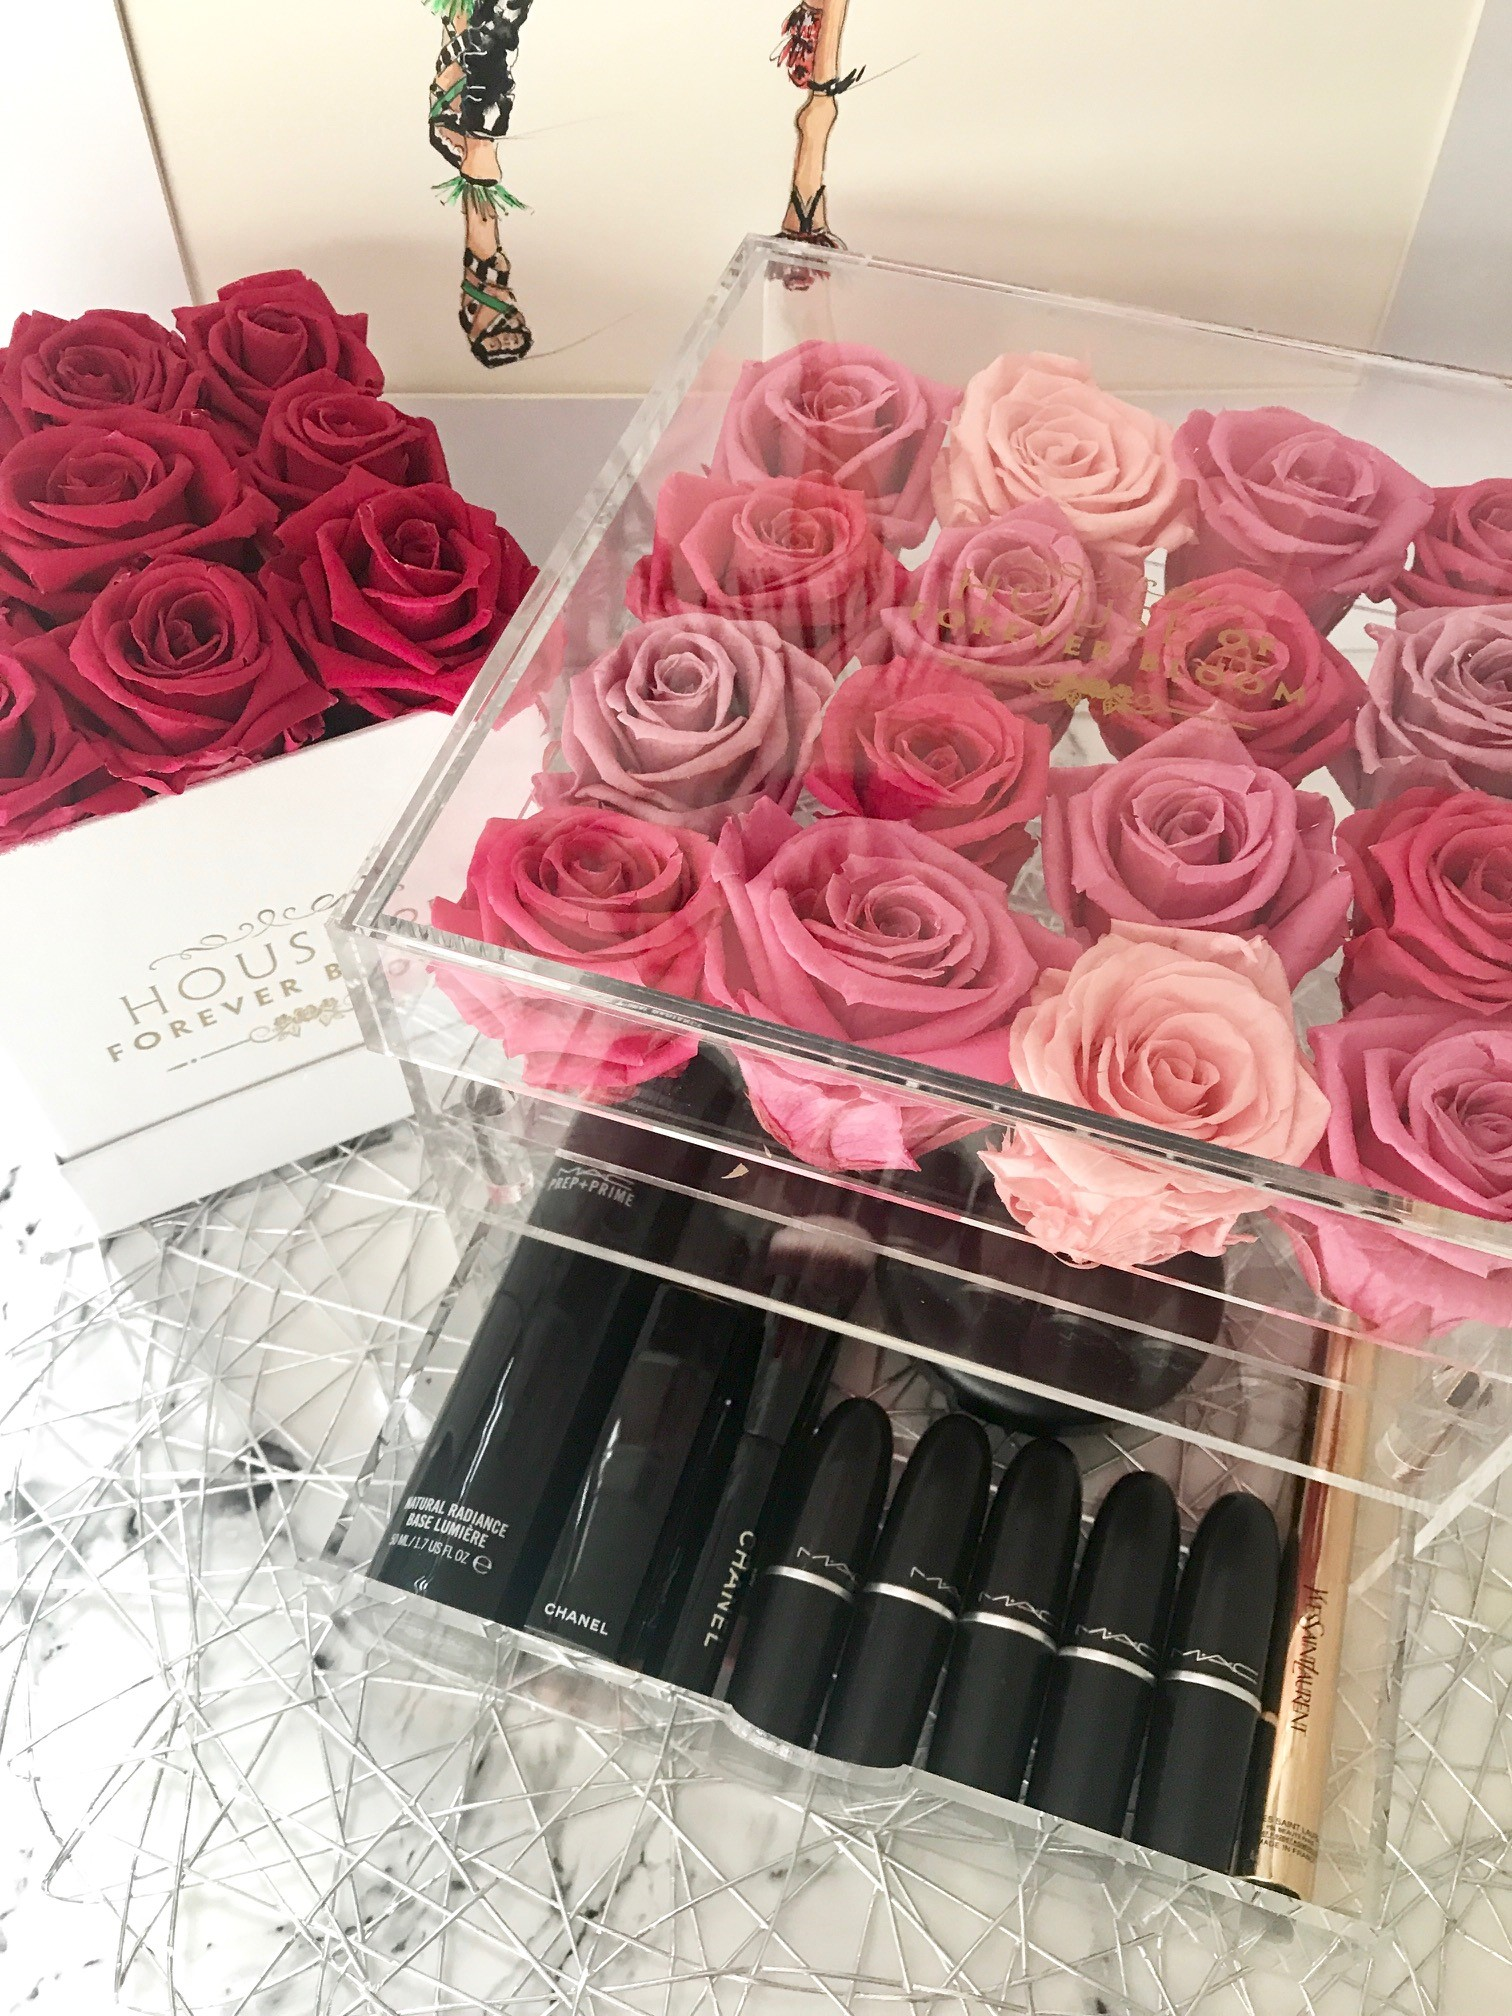 rose queen makeup box house of forever bloom. Black Bedroom Furniture Sets. Home Design Ideas